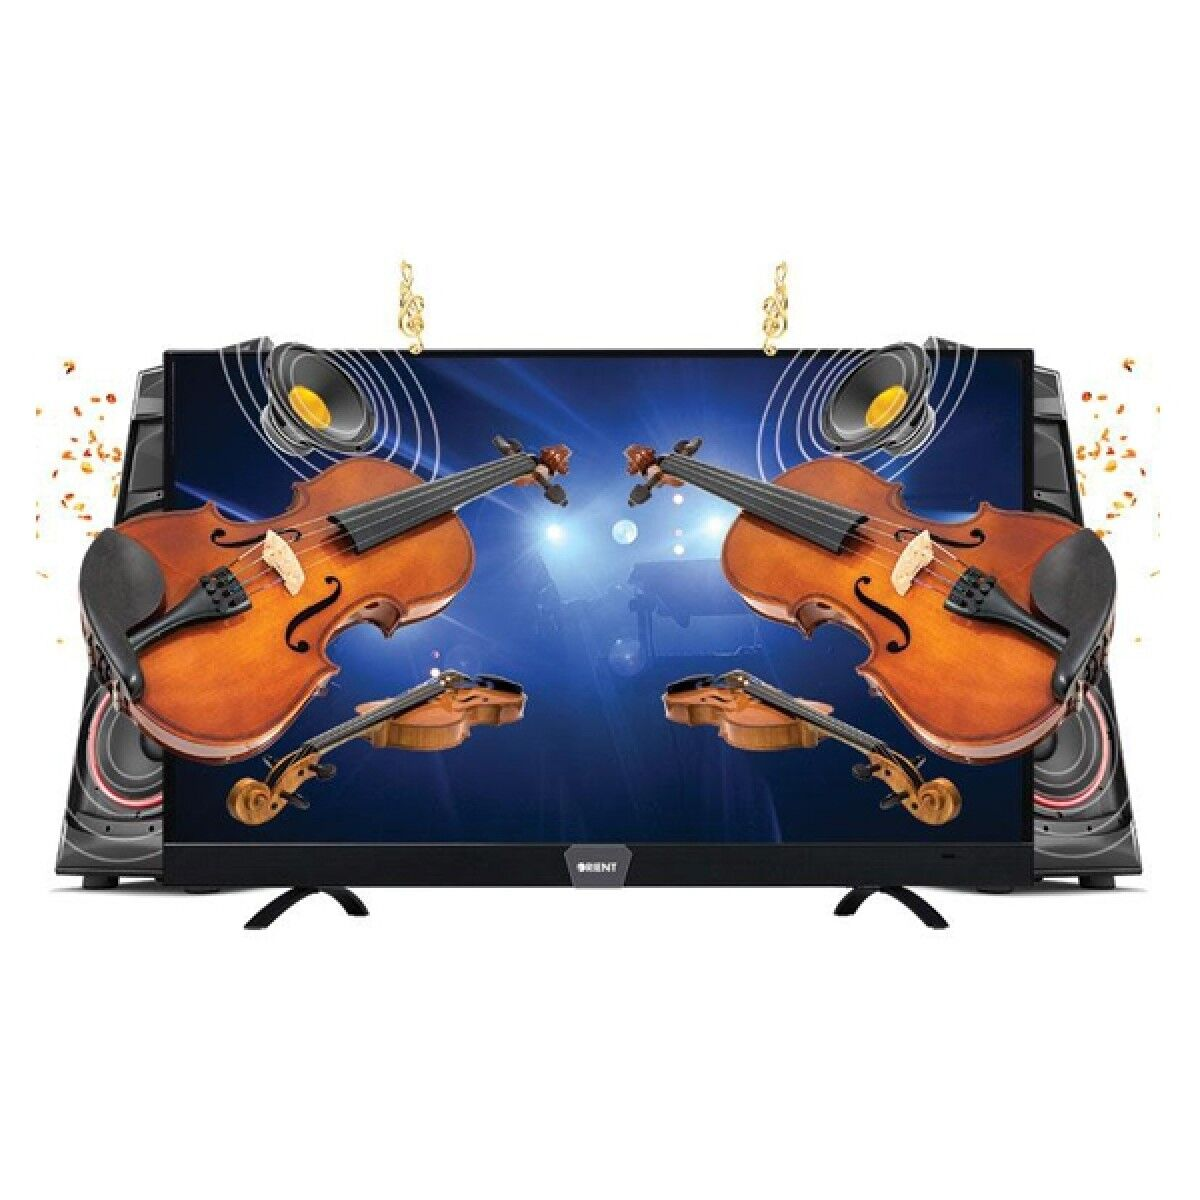 "Orient Violin 55"" FHD Smart LED TV (55S)"